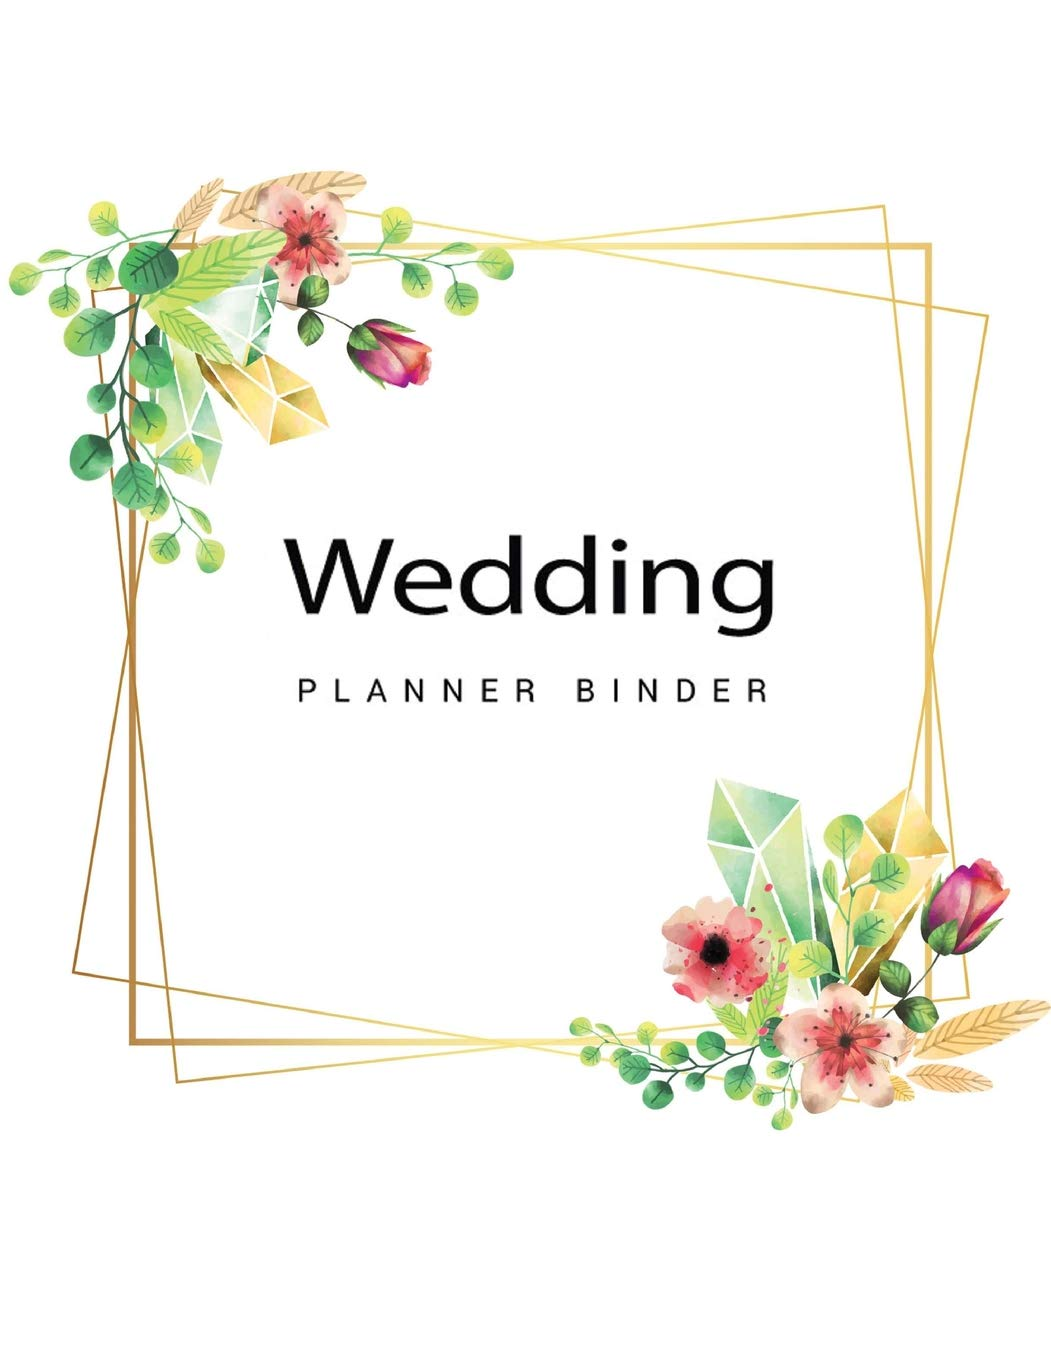 Wedding Planner Binder Wedding Planning Book Wedding Binder Template Wedding Pricing Guide Organizer Budget Savvy Maid Of Honor Planner Portable Guide Checklists Journal 120 Pages Miles Privi 9781722253561 Amazon Com Books